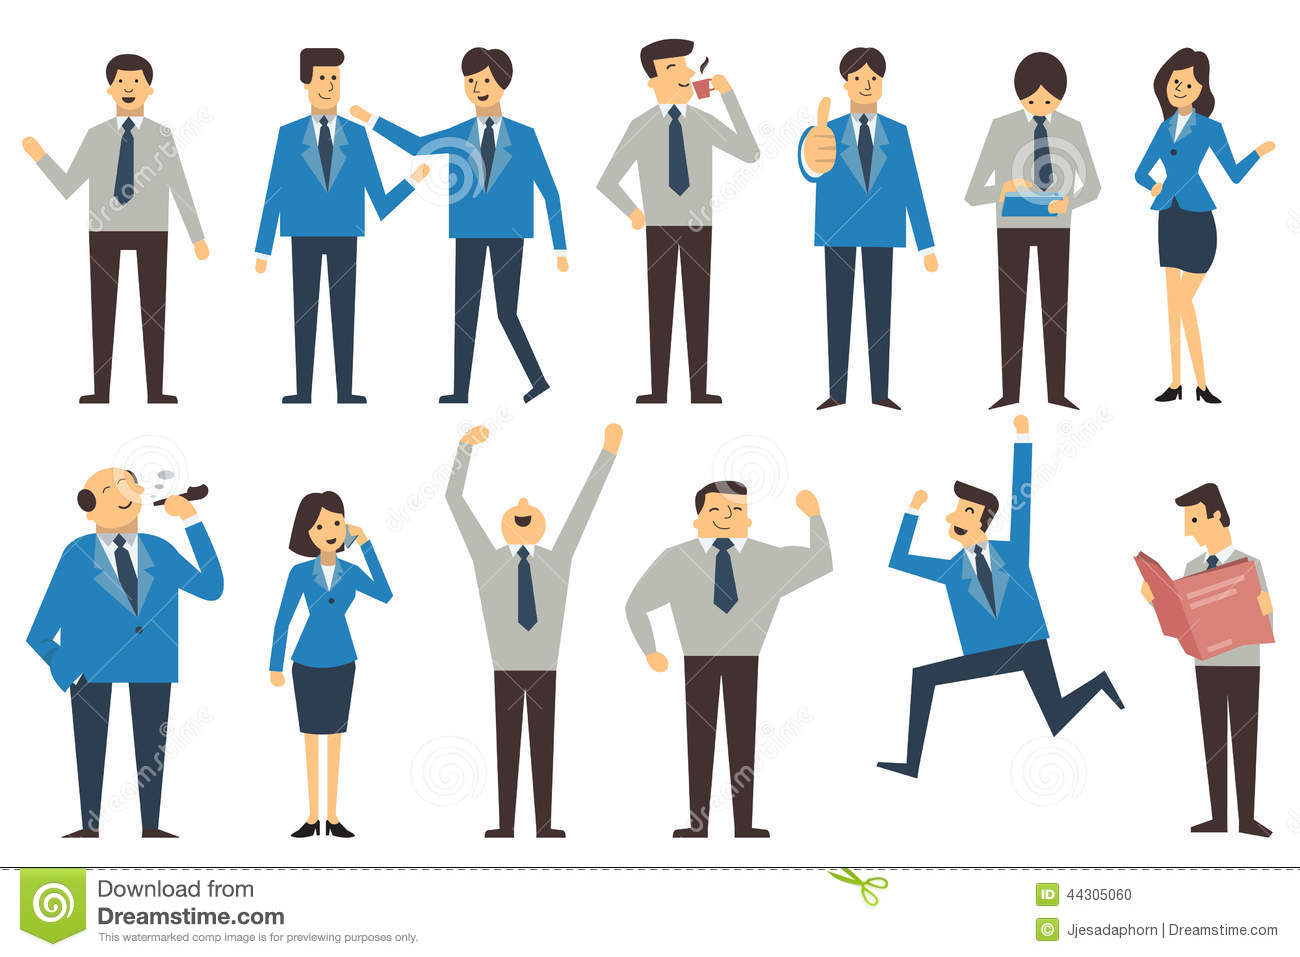 Business People Cartoon Stock Vector. Image Of Feeling